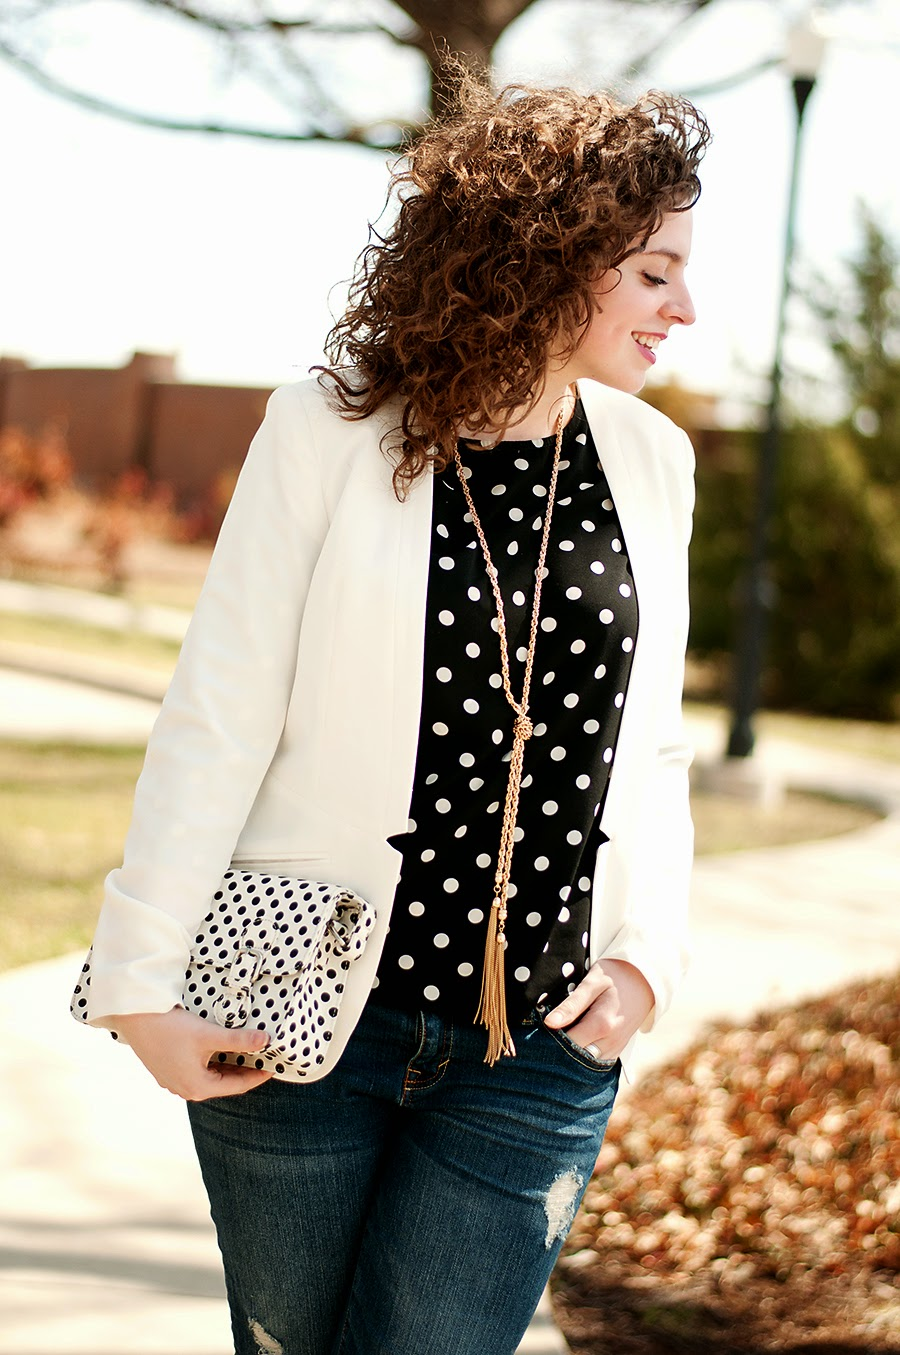 Double Dot Outfit